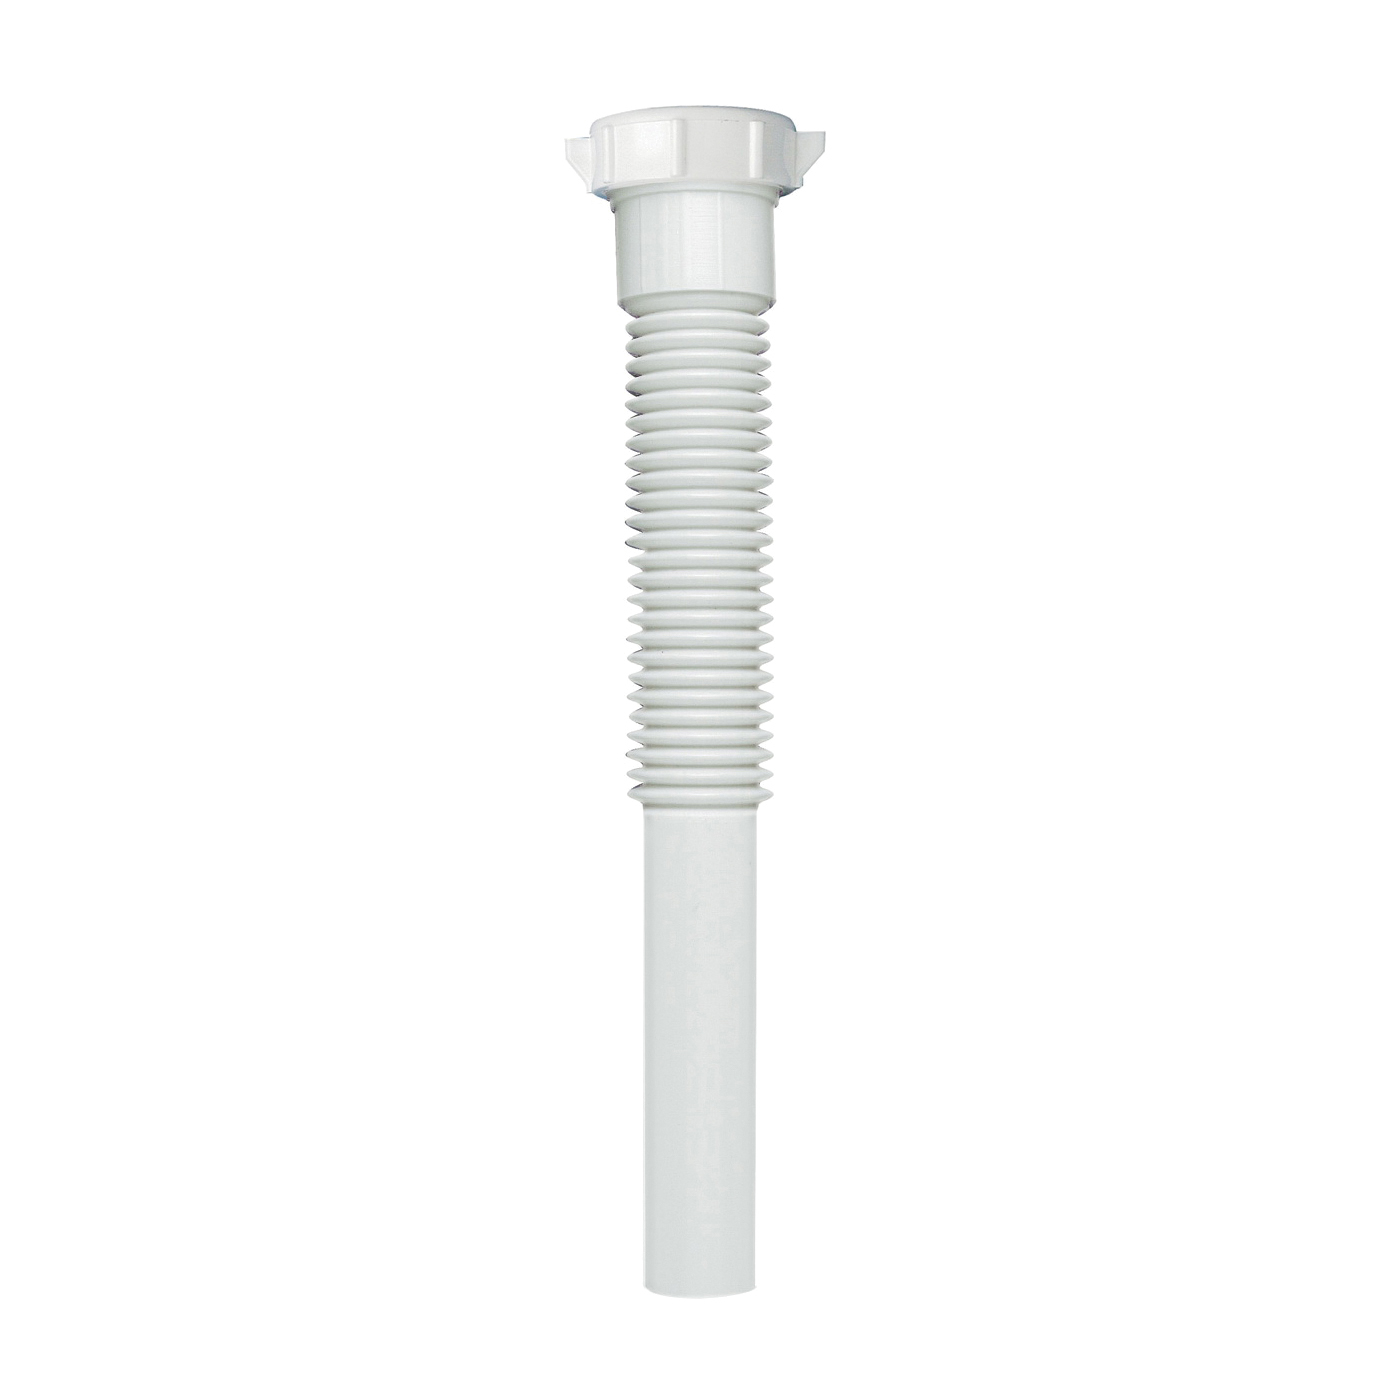 Picture of Plumb Pak PP812-5 Extension Tube, 1-1/4 in, 9 in L, Slip Joint, Polypropylene, White